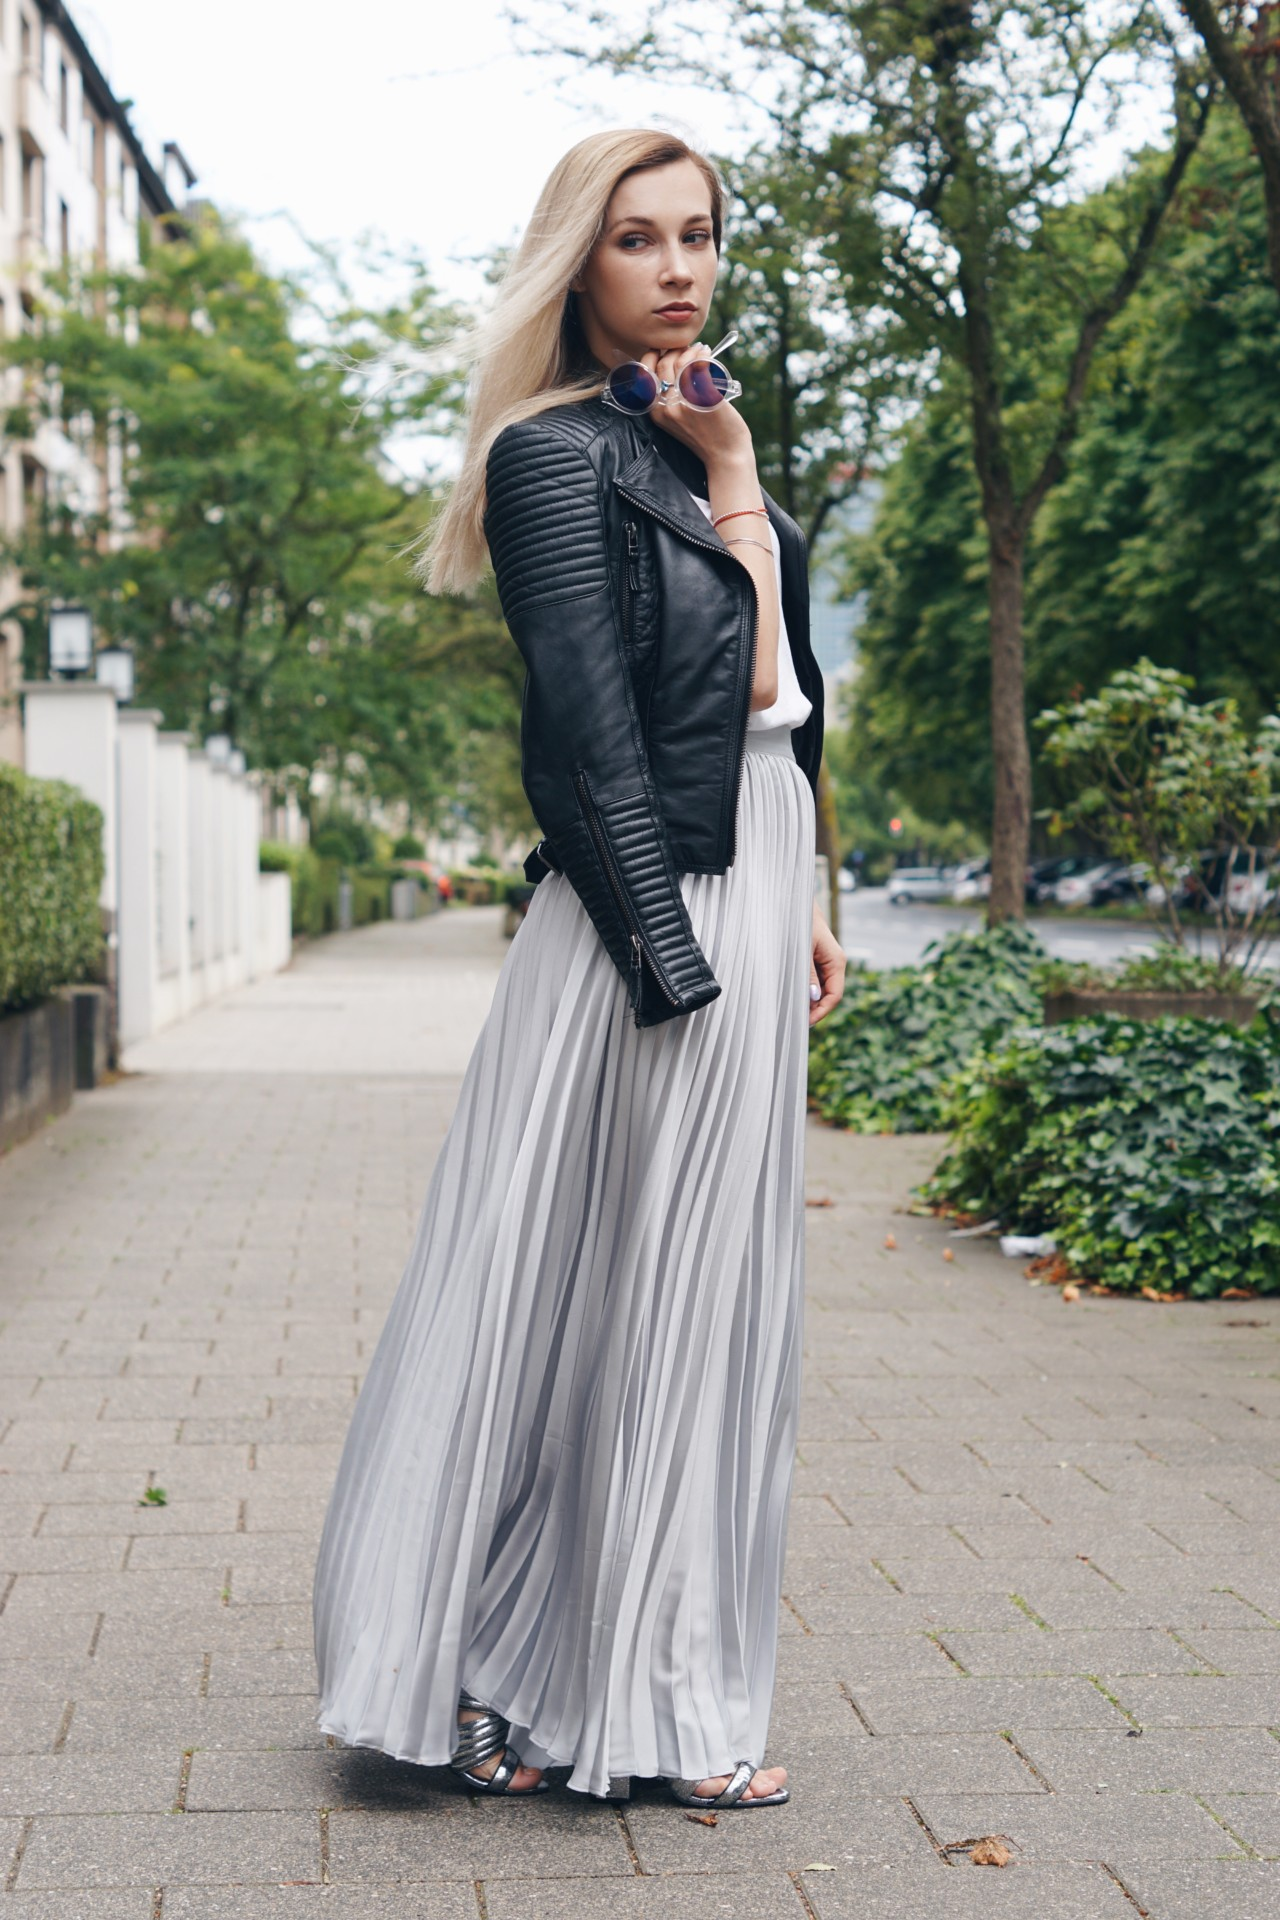 streetstyle_fashion_dbkstylez_pleated_falltrends_мода_тренды_фэшн